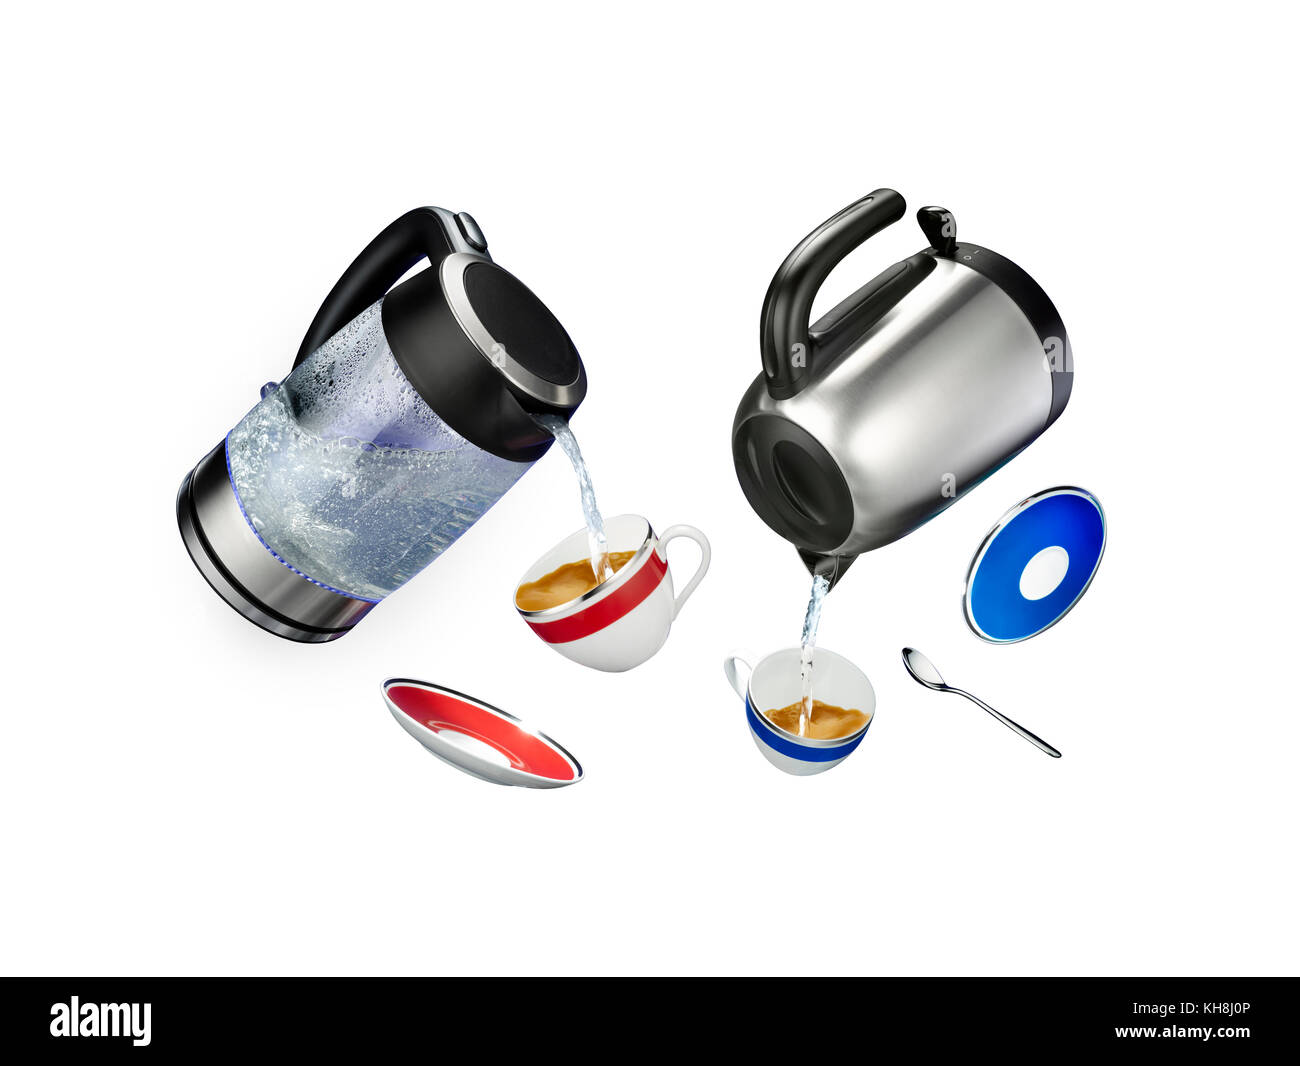 Tumbling items making a cup of tea - Stock Image